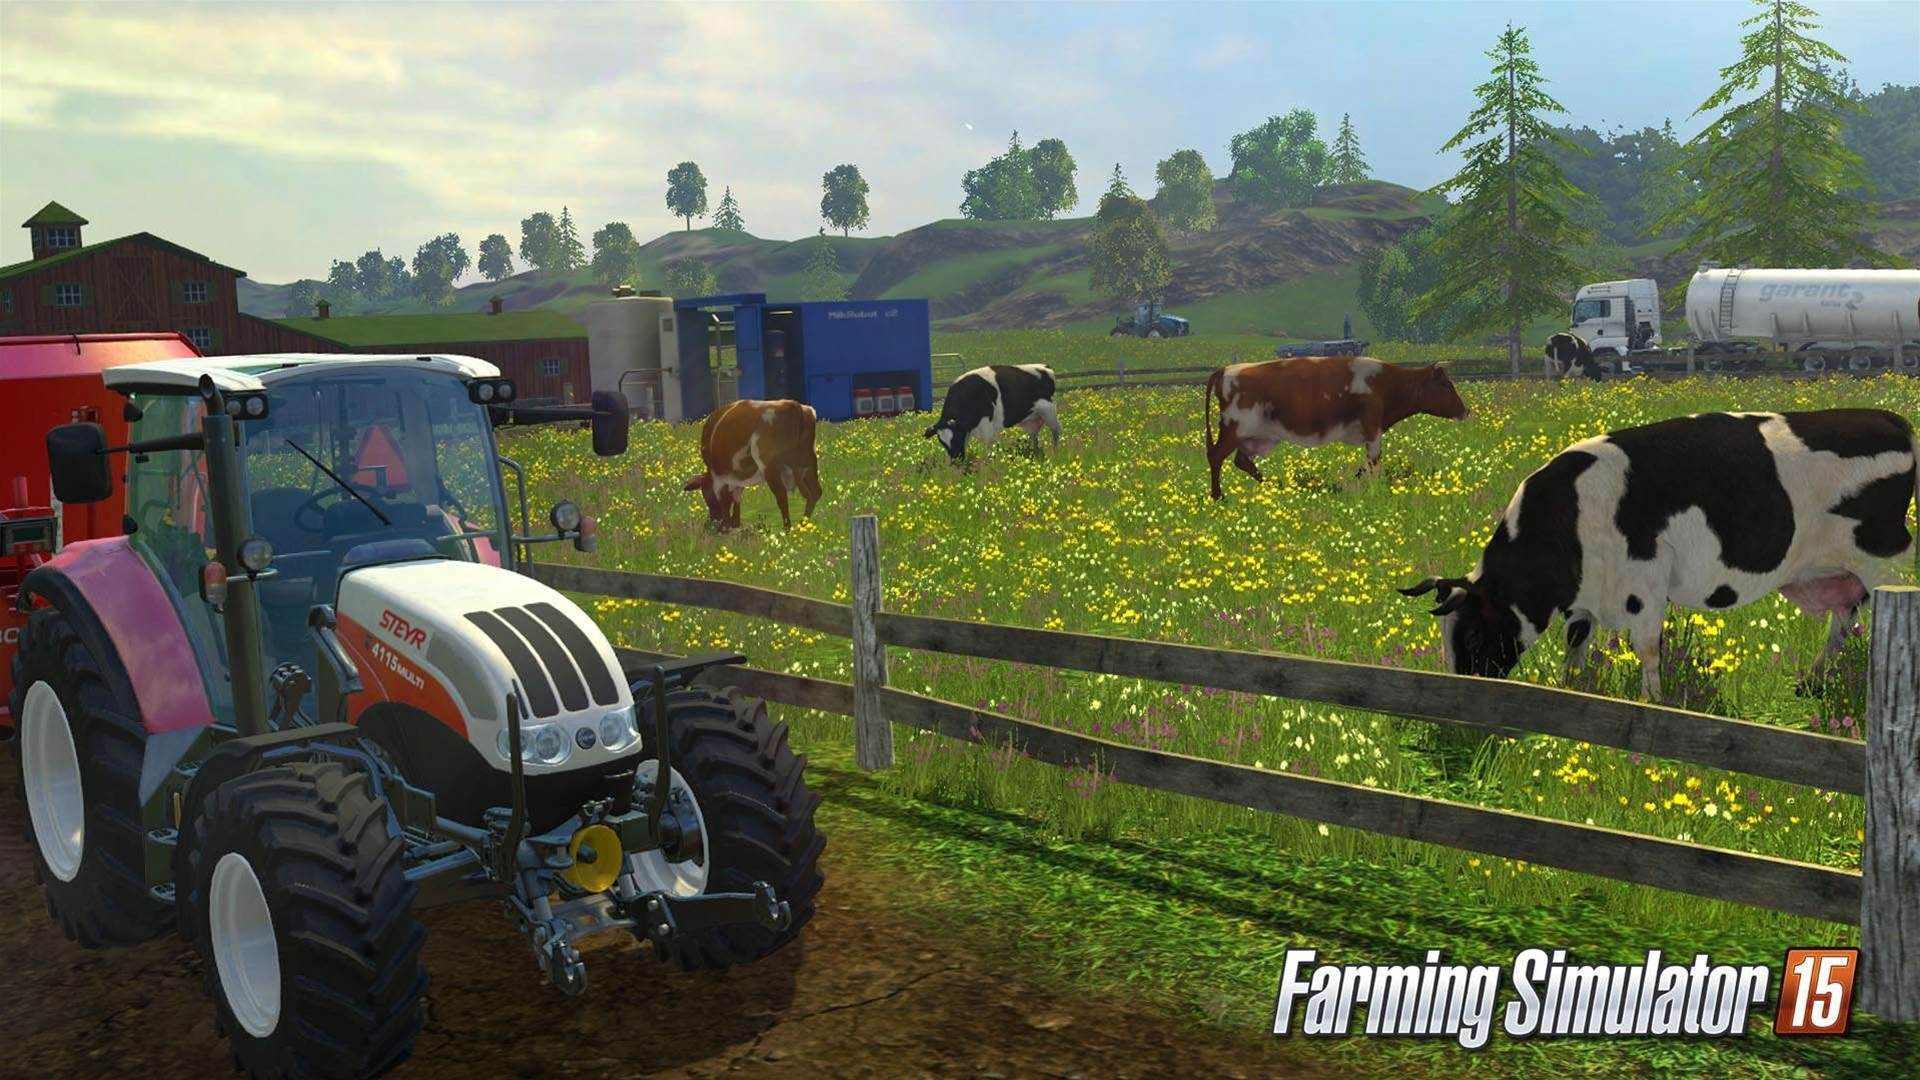 Farming Simulator 15 coming to consoles